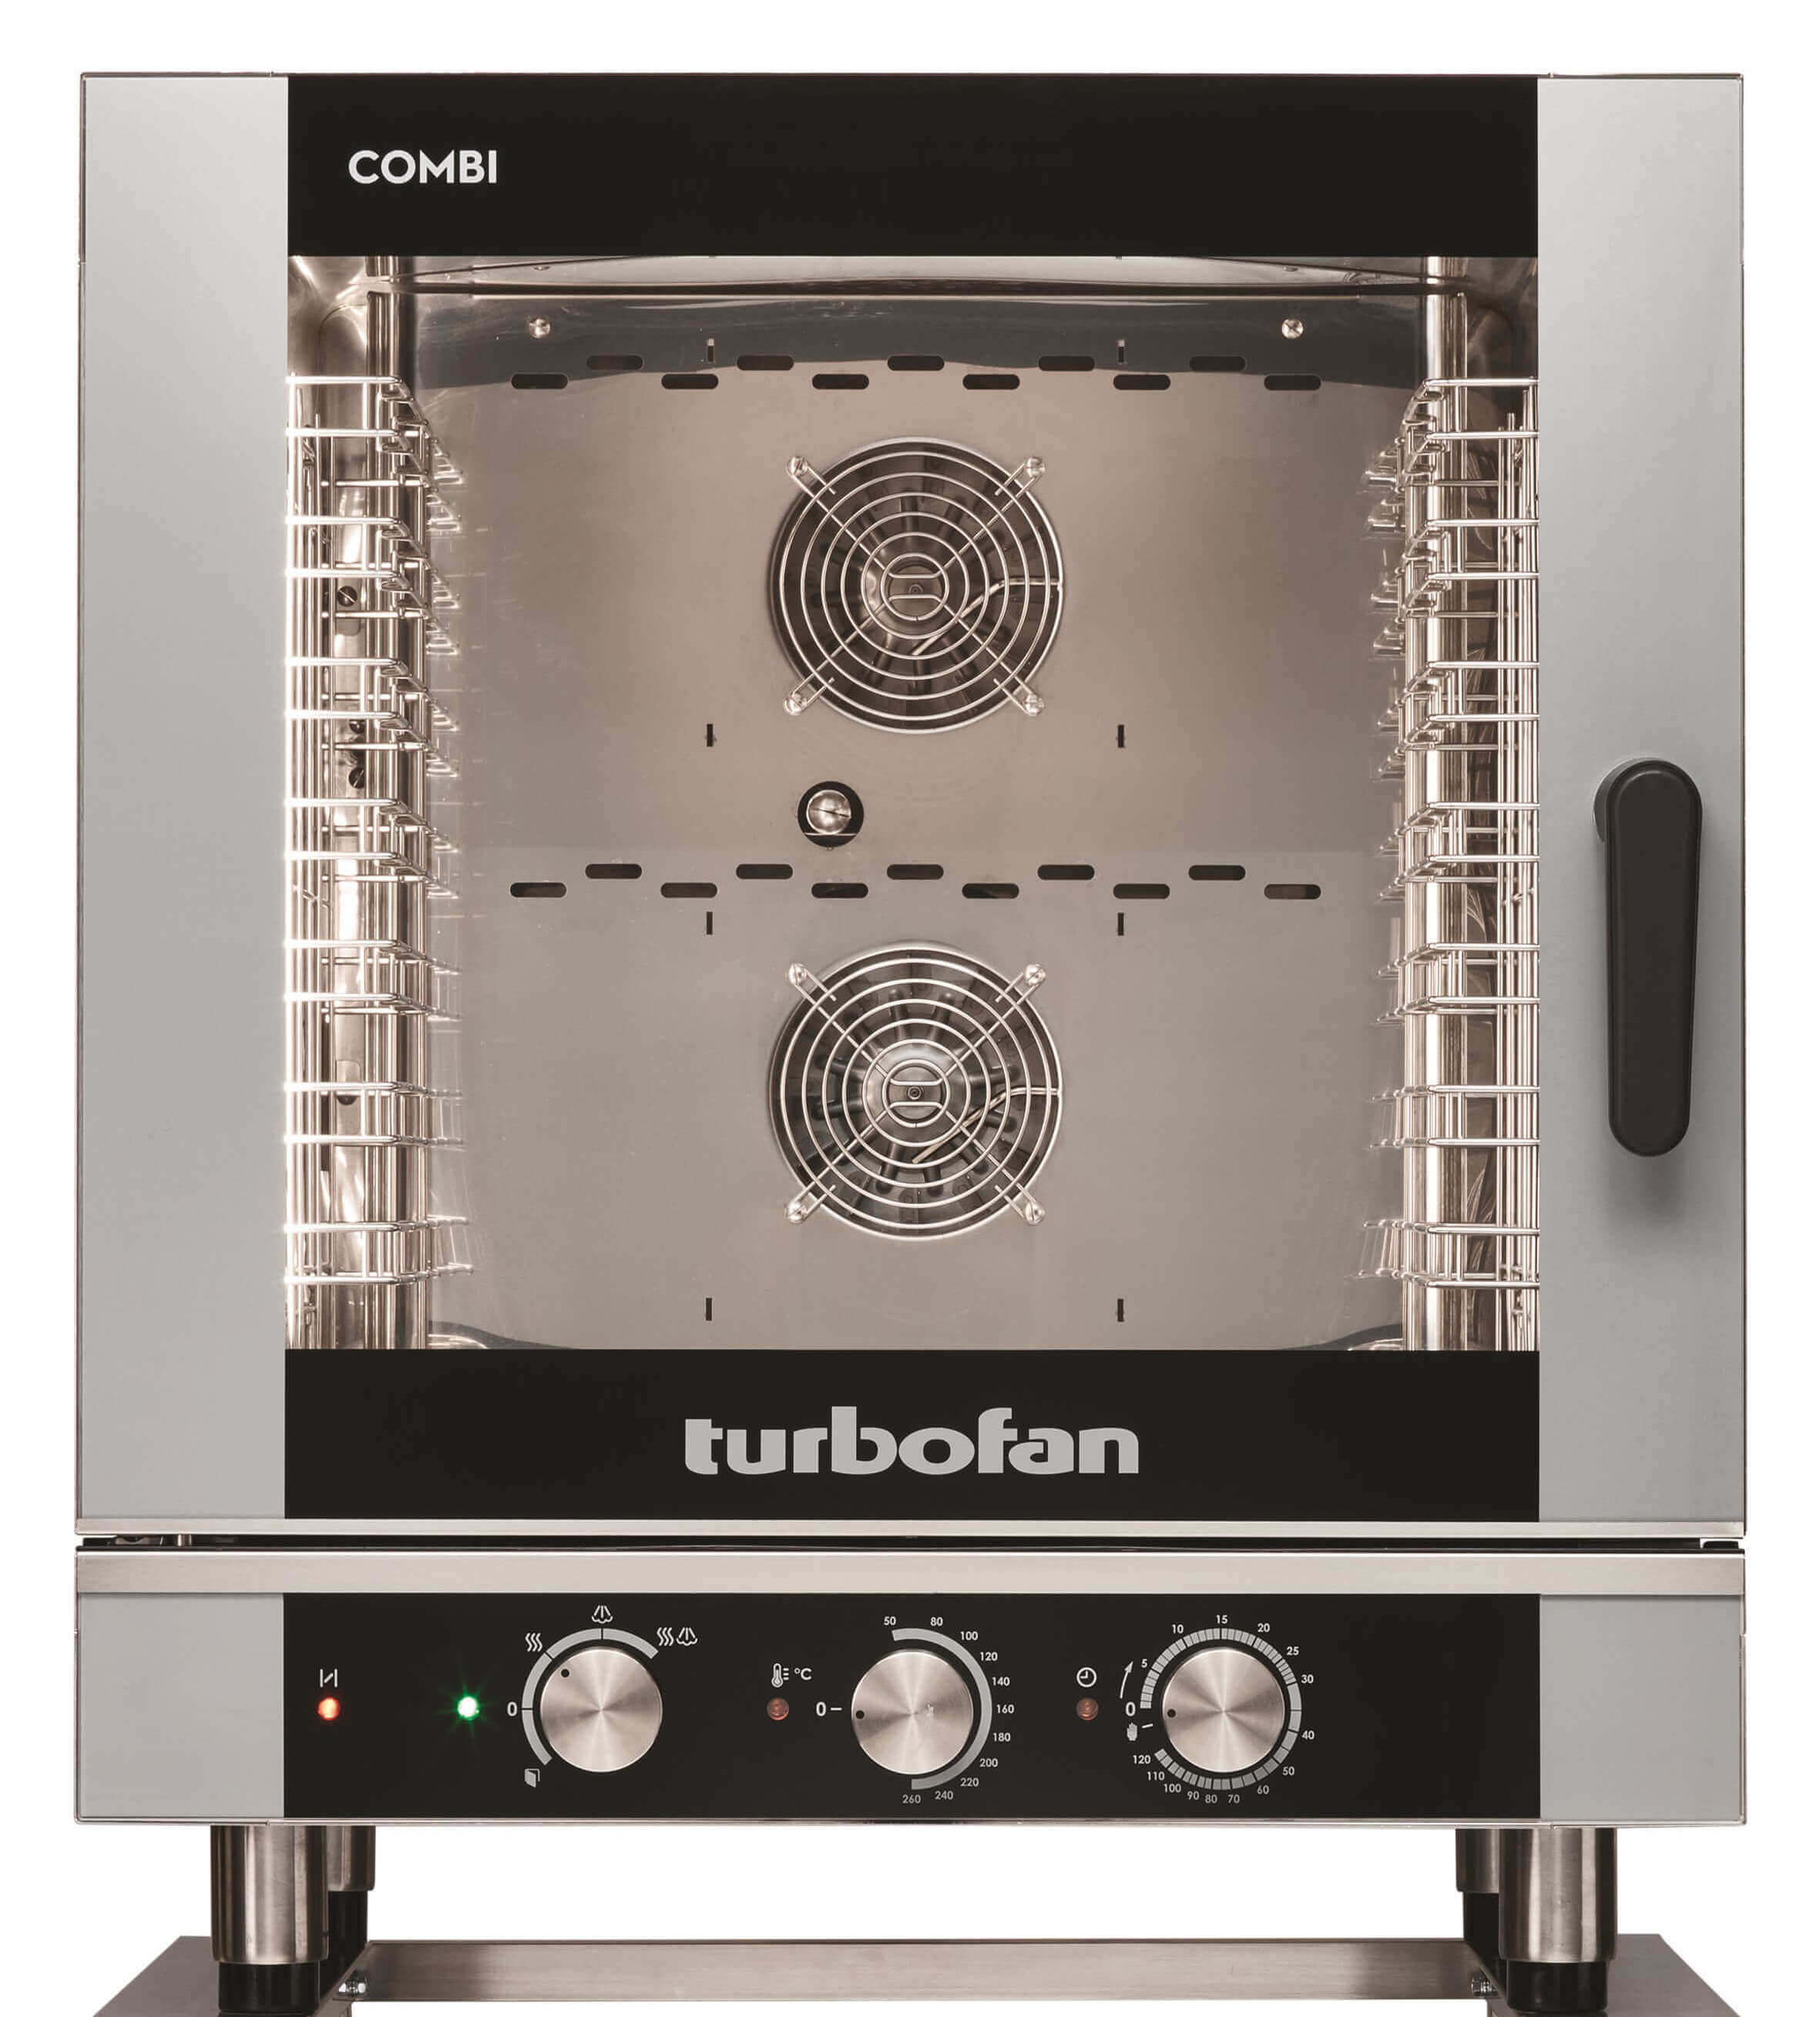 Blue Seal Turbofan EC40M7 Combi Steamer